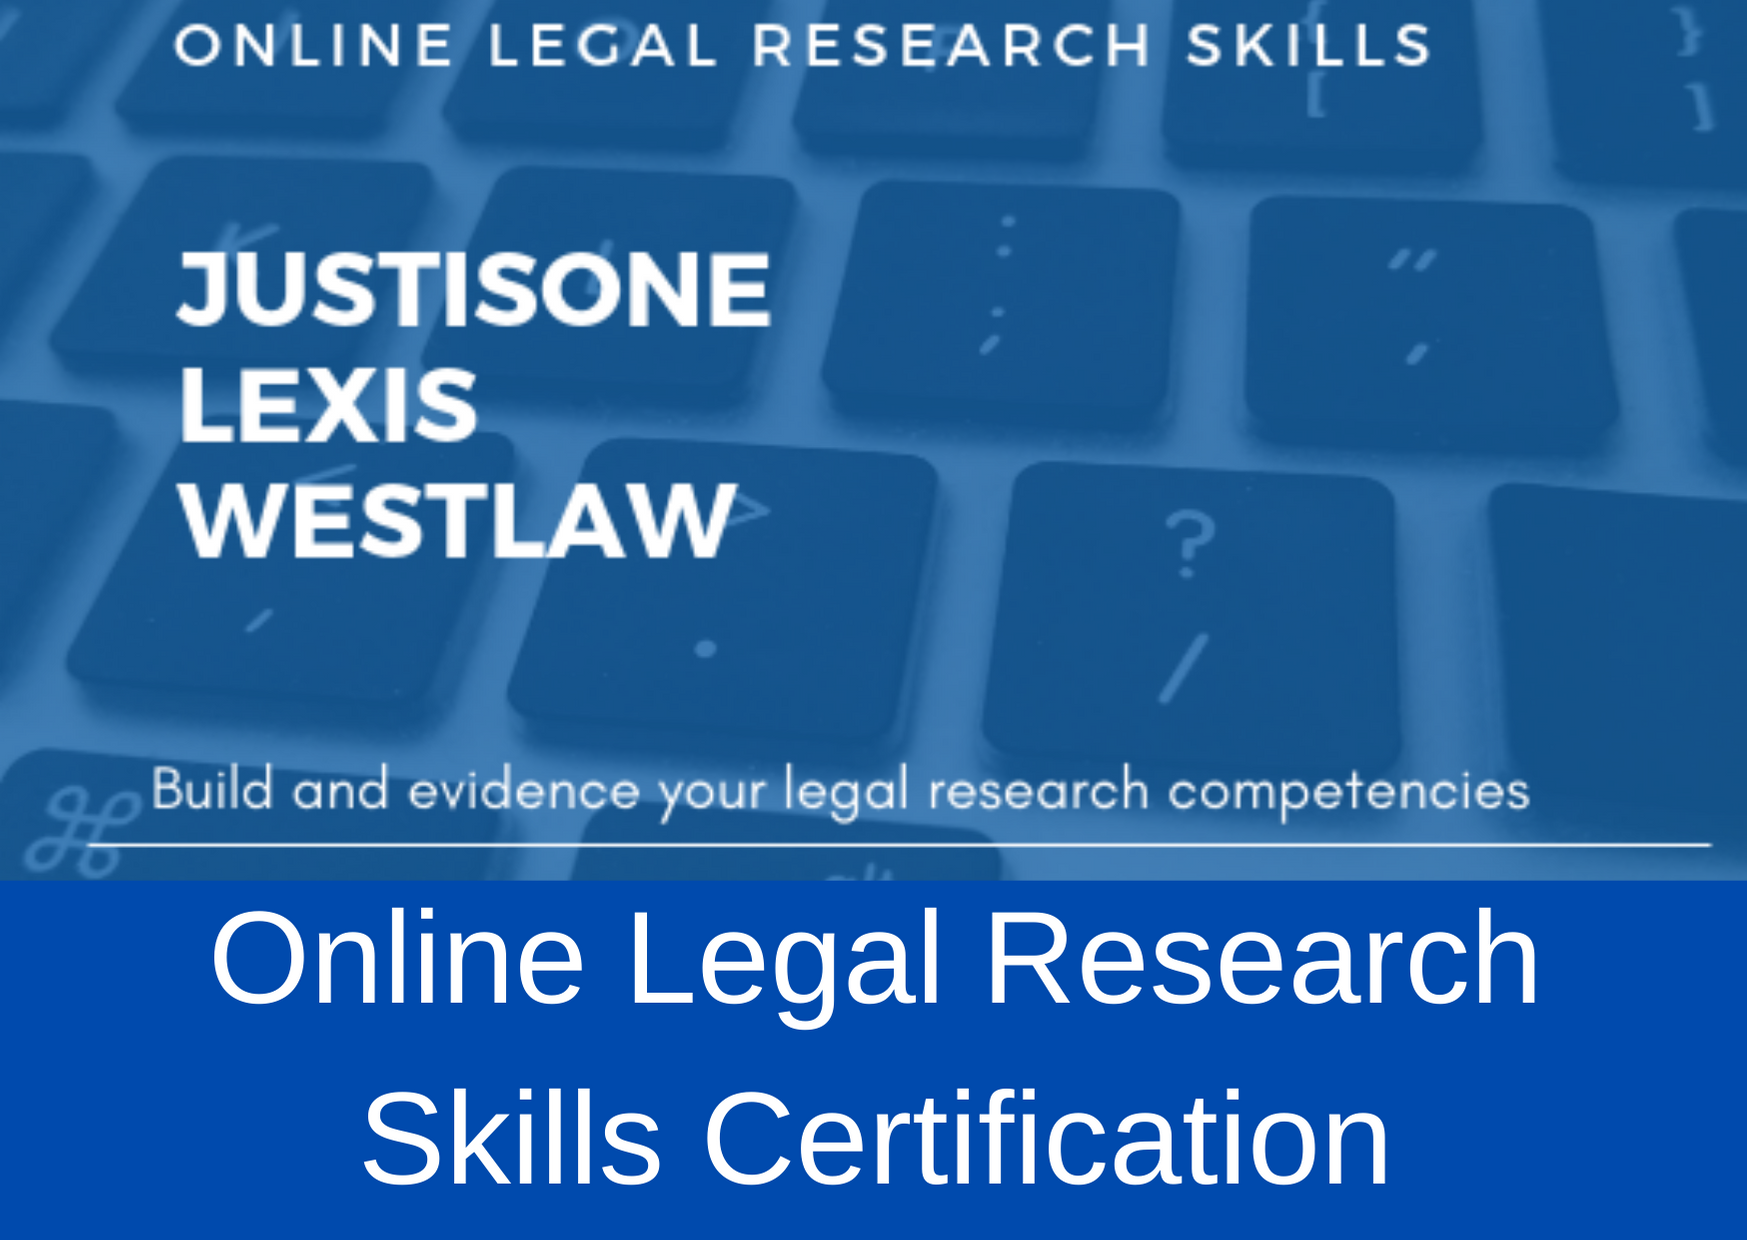 Online Legal Research Skills Certification